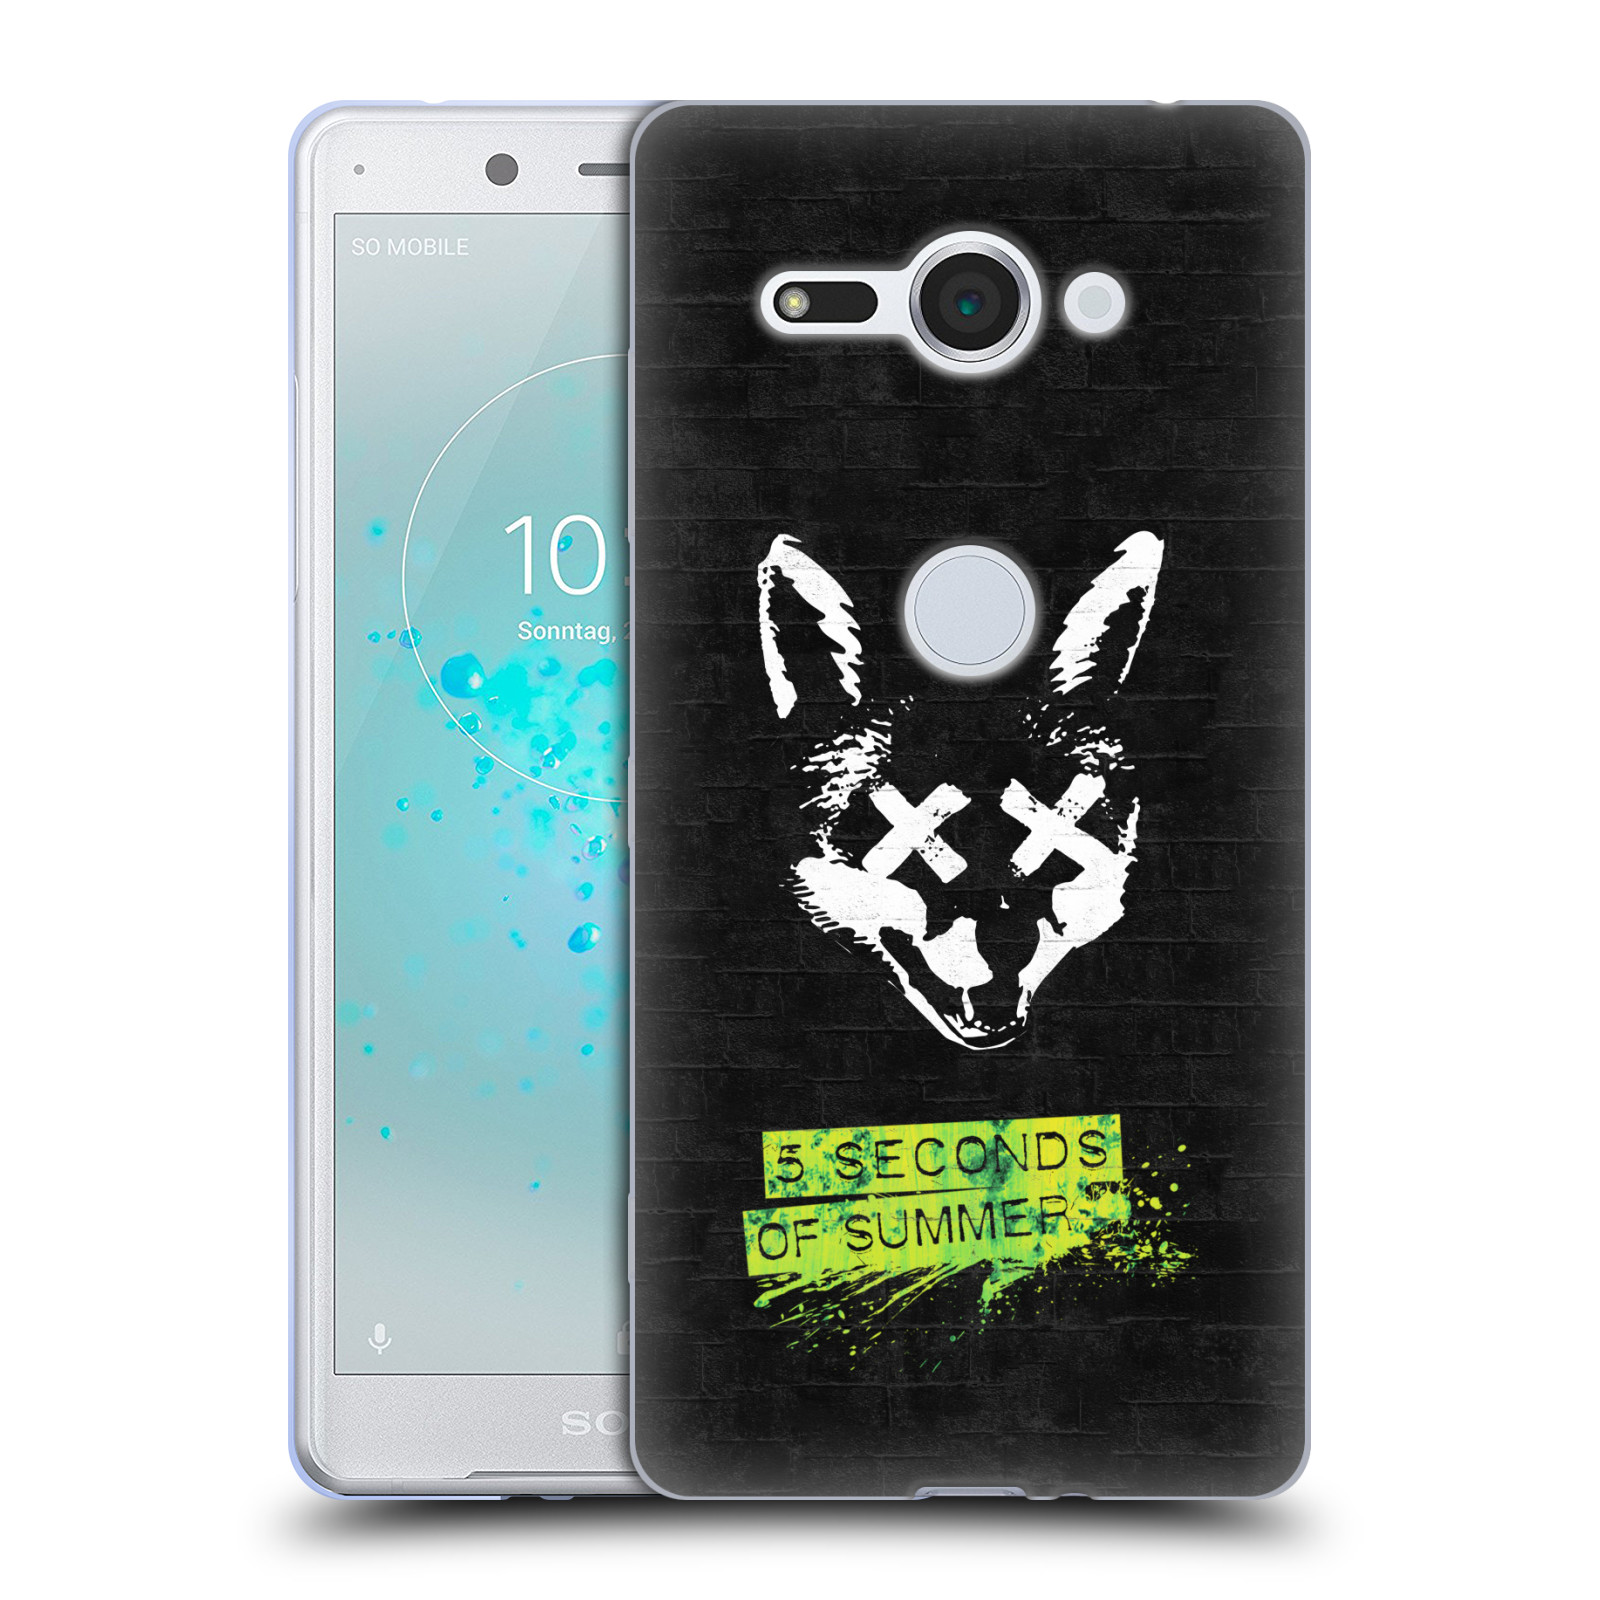 Silikonové pouzdro na mobil Sony Xperia XZ2 Compact - Head Case - 5 Seconds of Summer - Fox